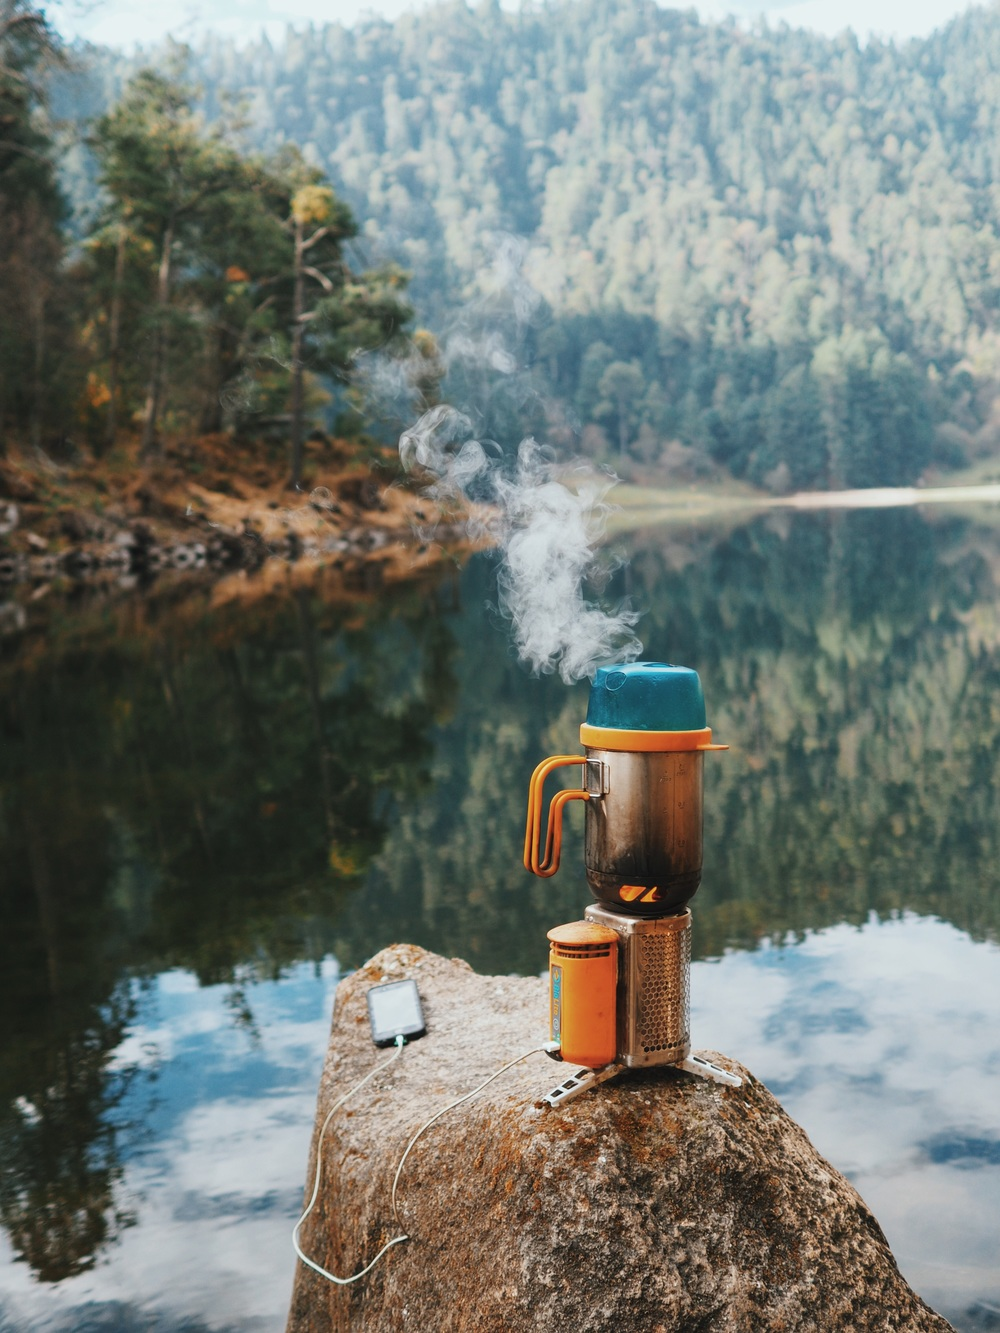 Lakeside breakfast with our BioLite CampStove